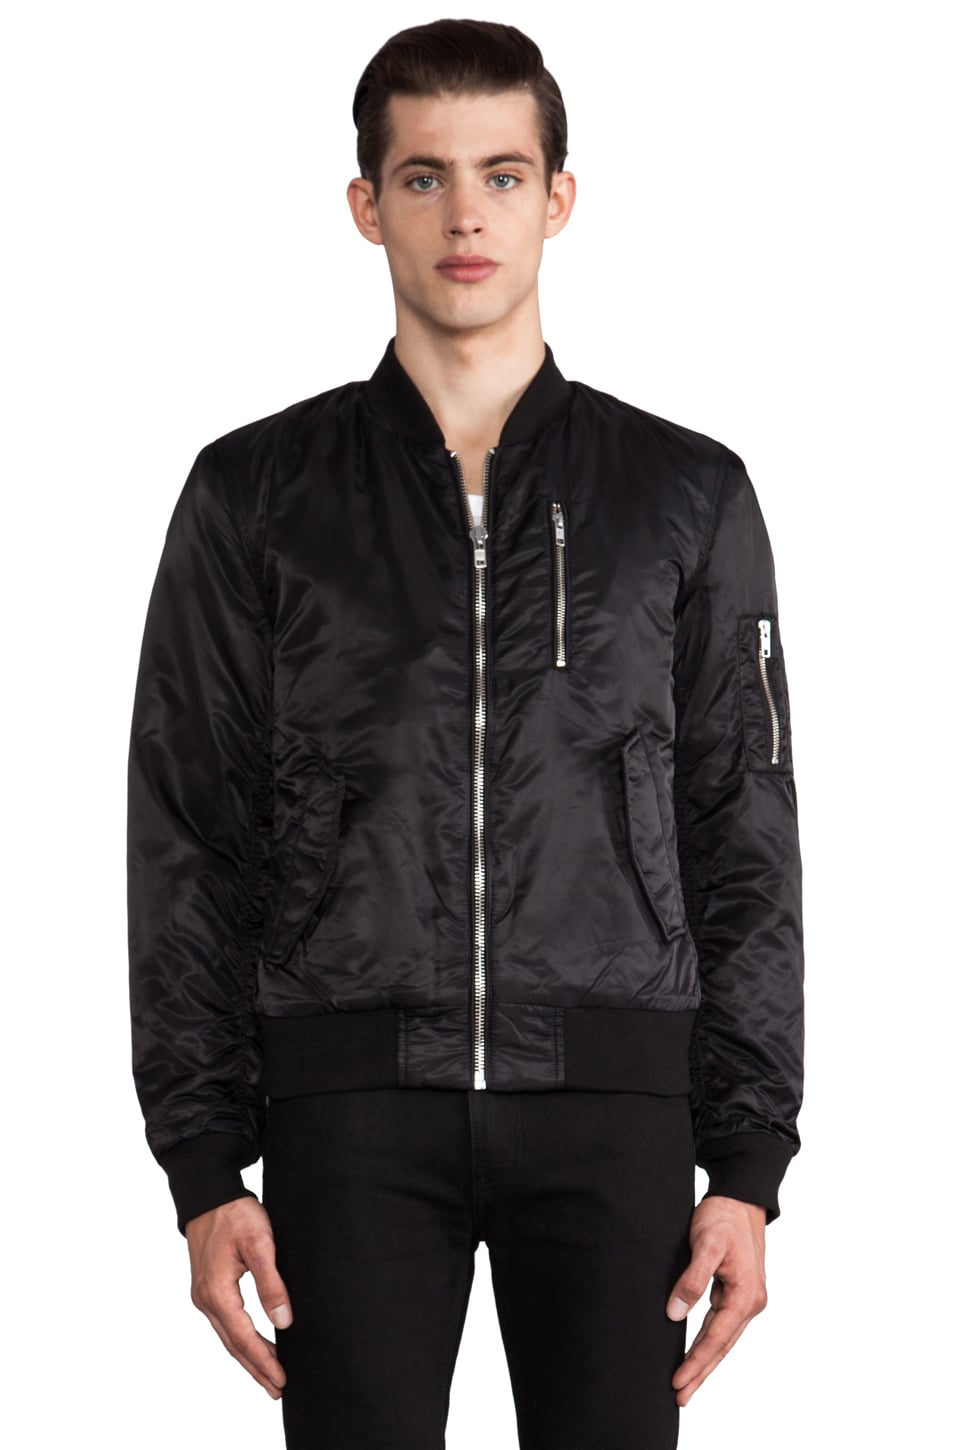 BLK DNM Bomber Jacket in Black